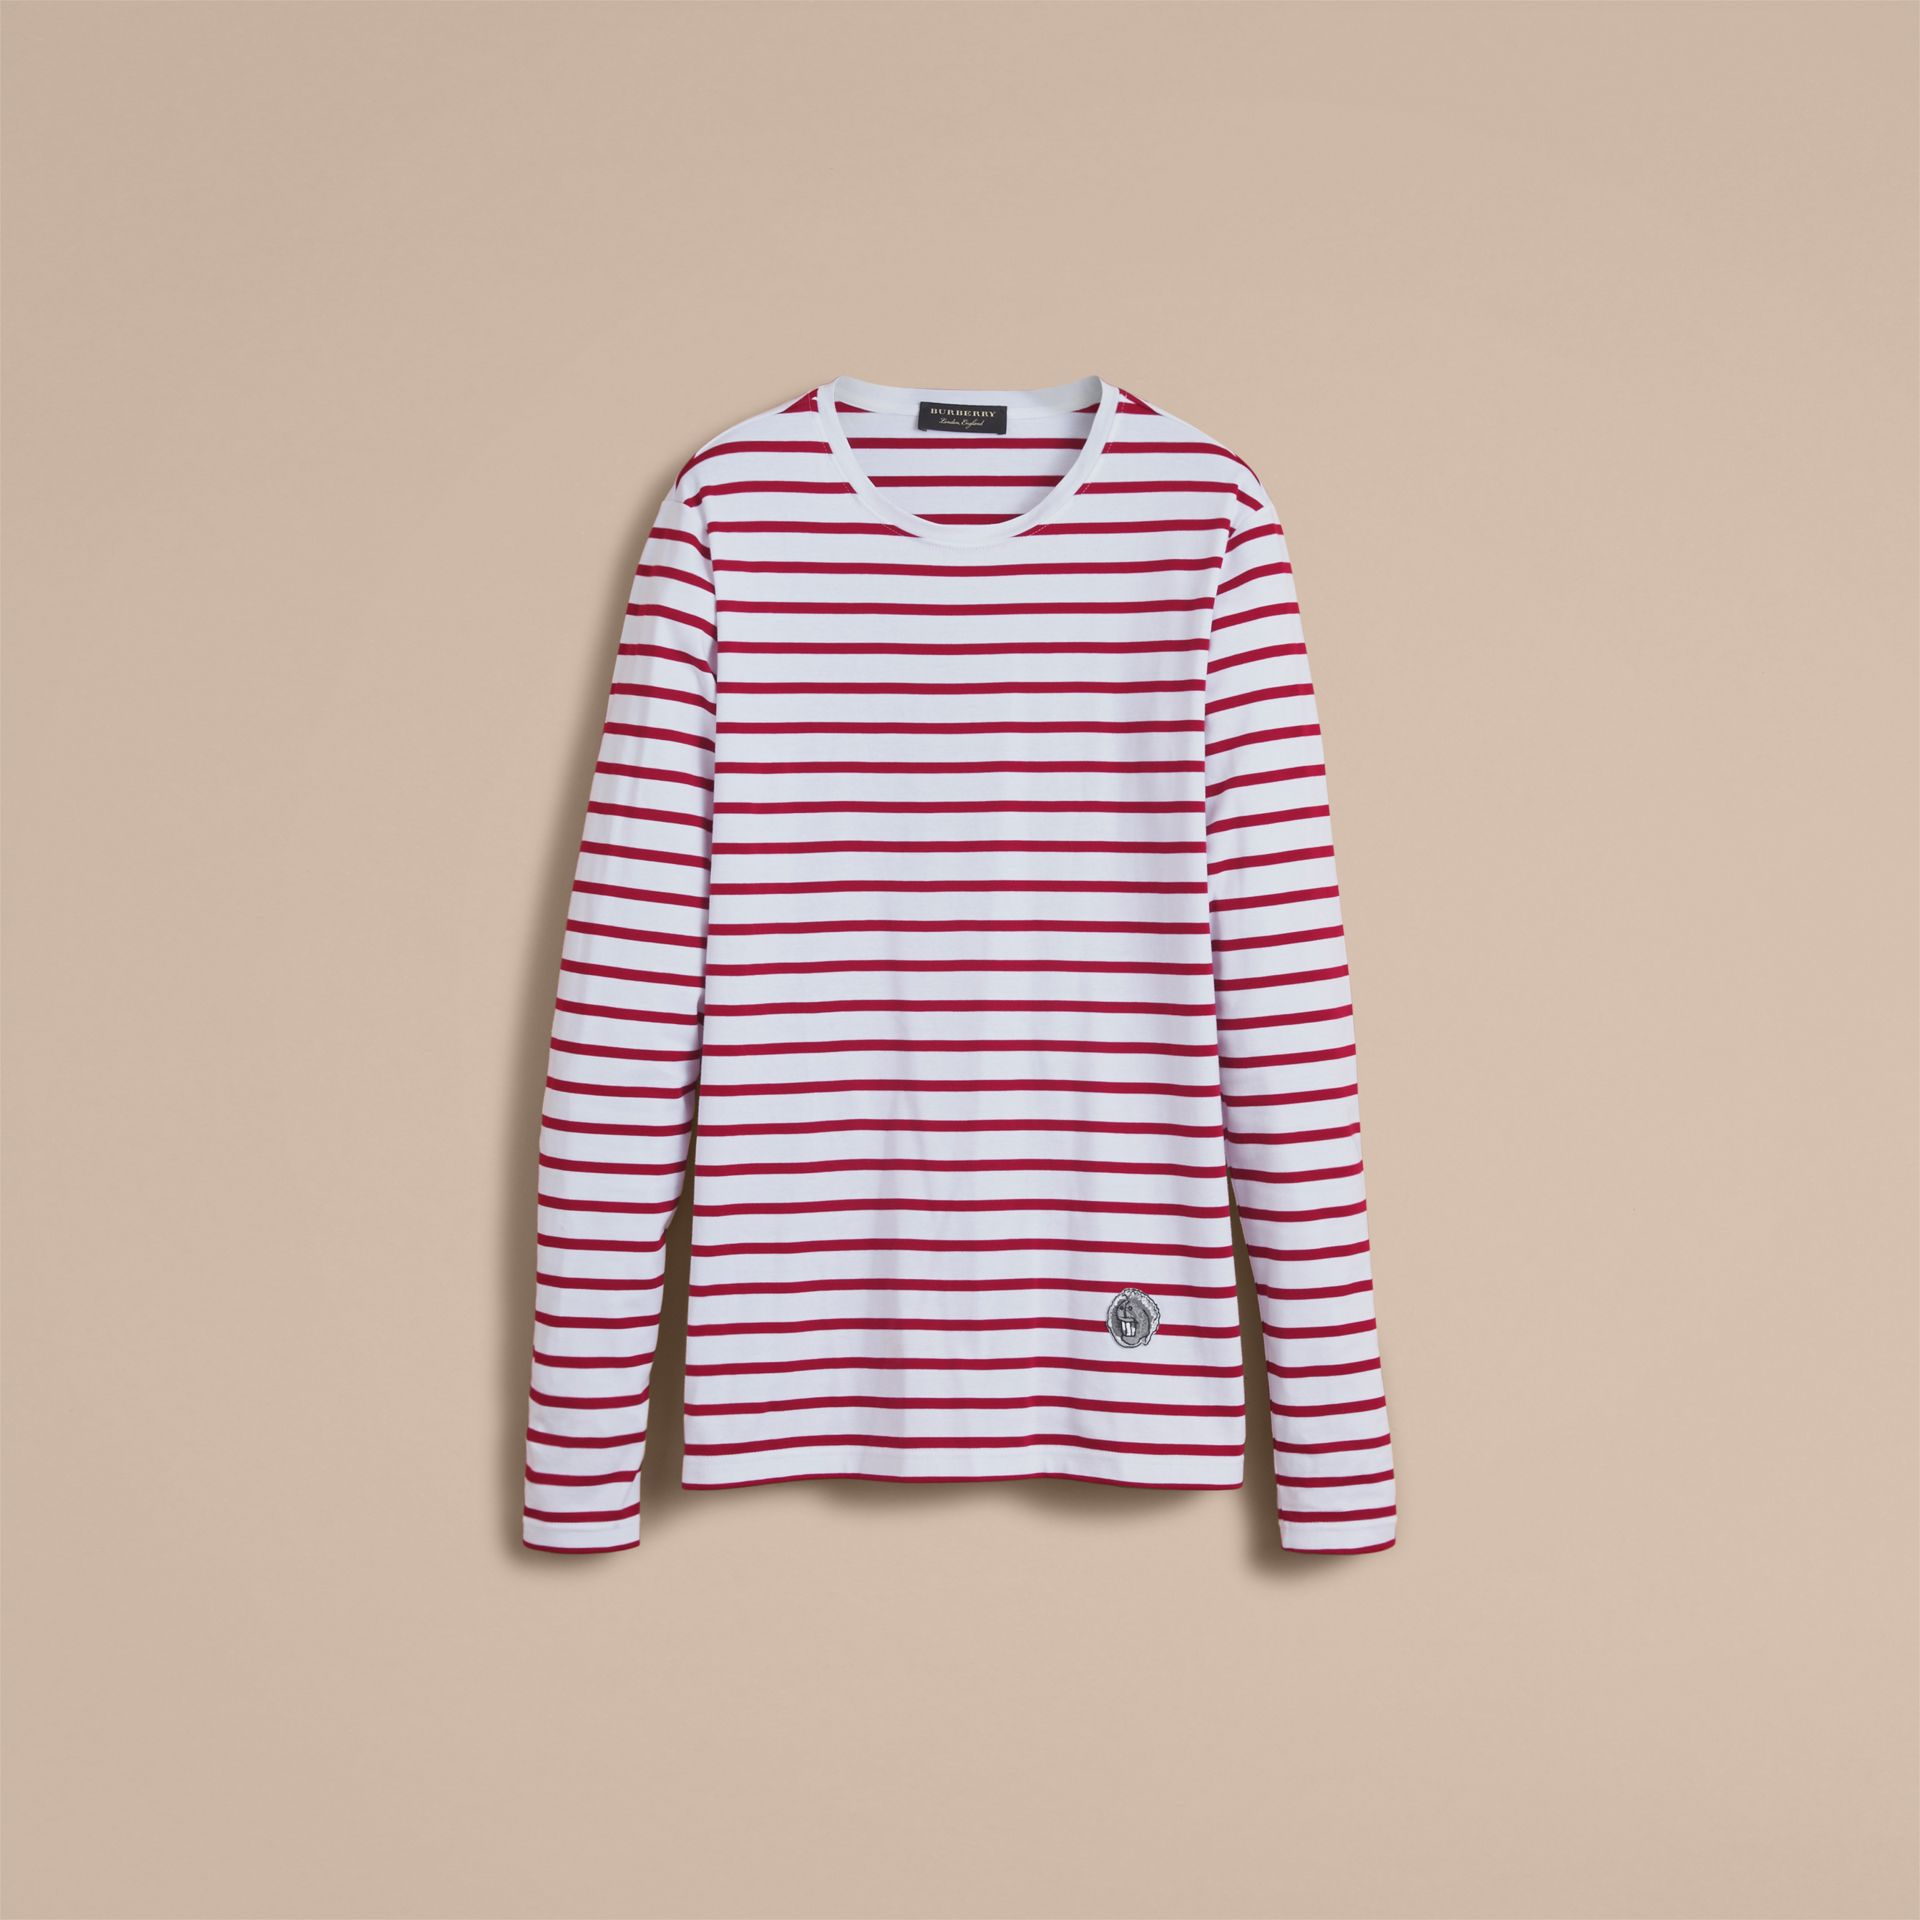 Unisex Pallas Heads Motif Breton Stripe Cotton Top in Parade Red - Men | Burberry - gallery image 3